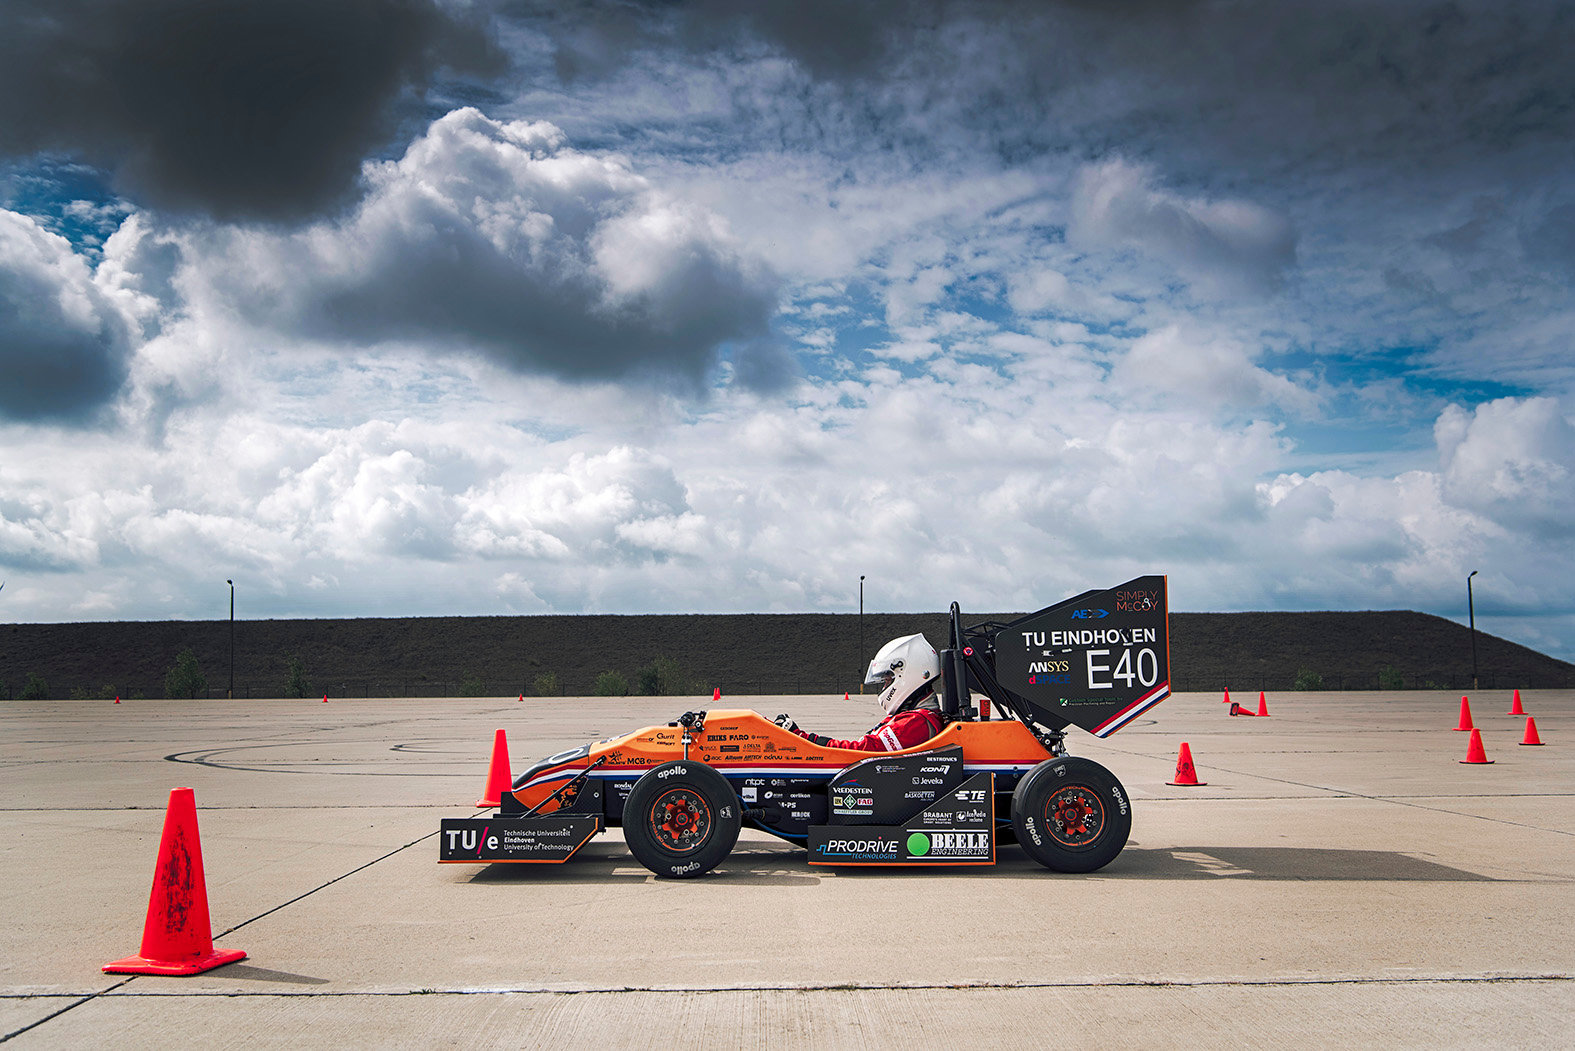 URE12 - Electric Racecar by the TU Students